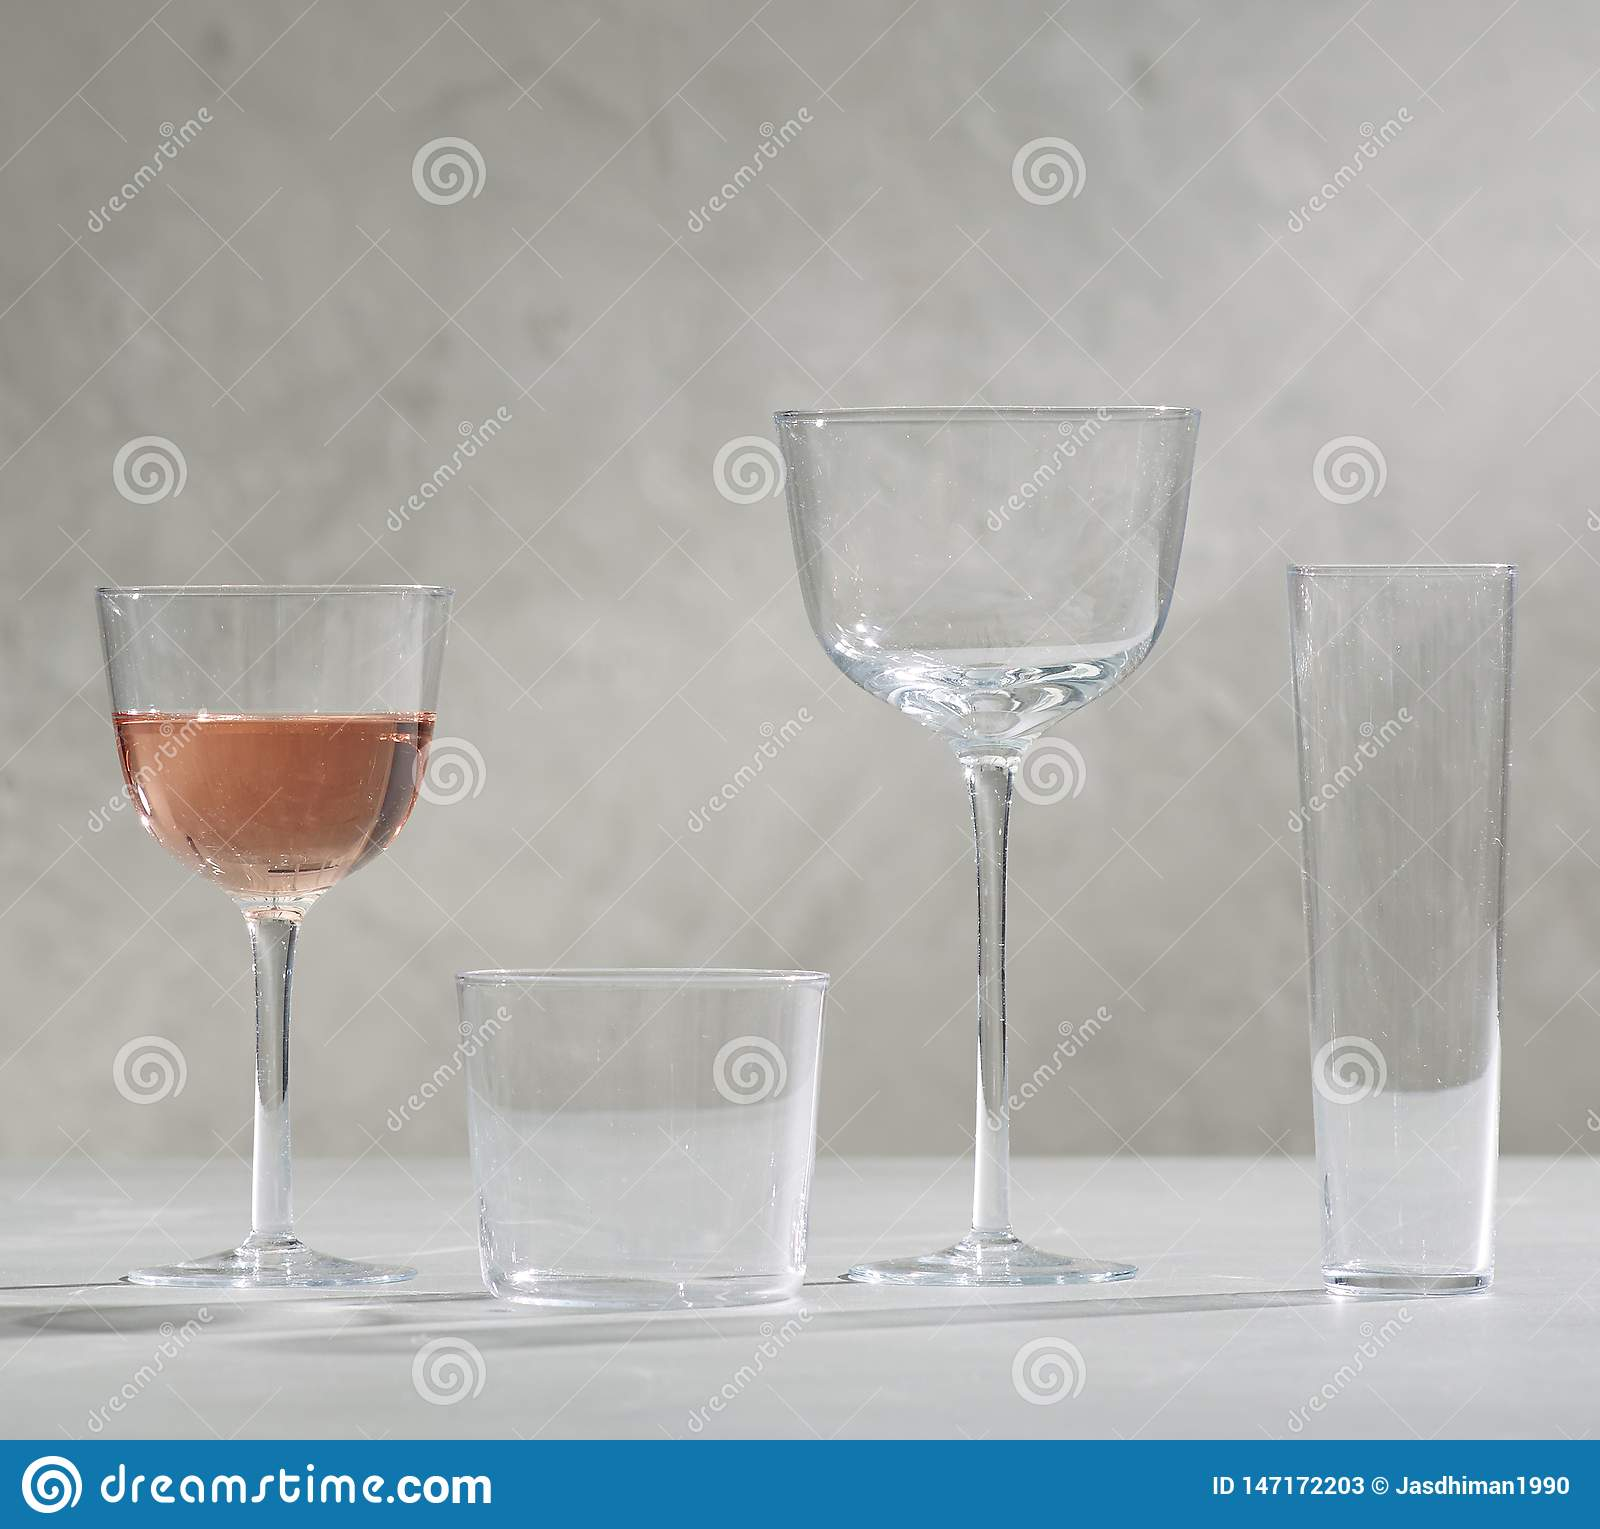 A glass of red wine and four empty wine glasses, A glass of red wine and four empty wine glasses